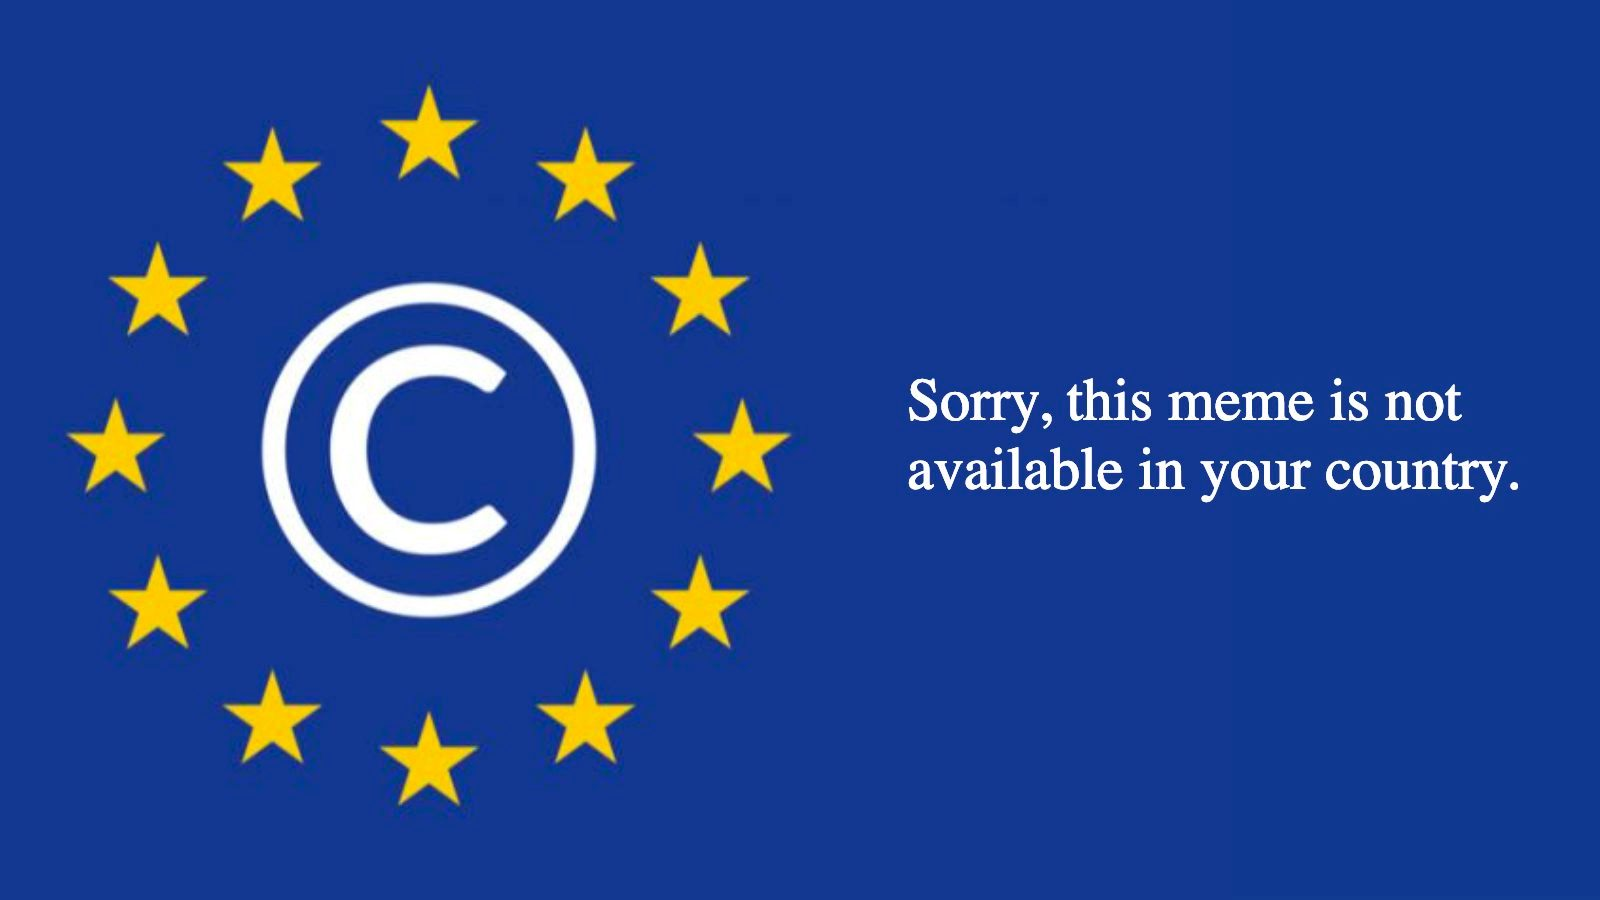 article-13-eu-parliment-memes-youtube-passed-vote.jpg